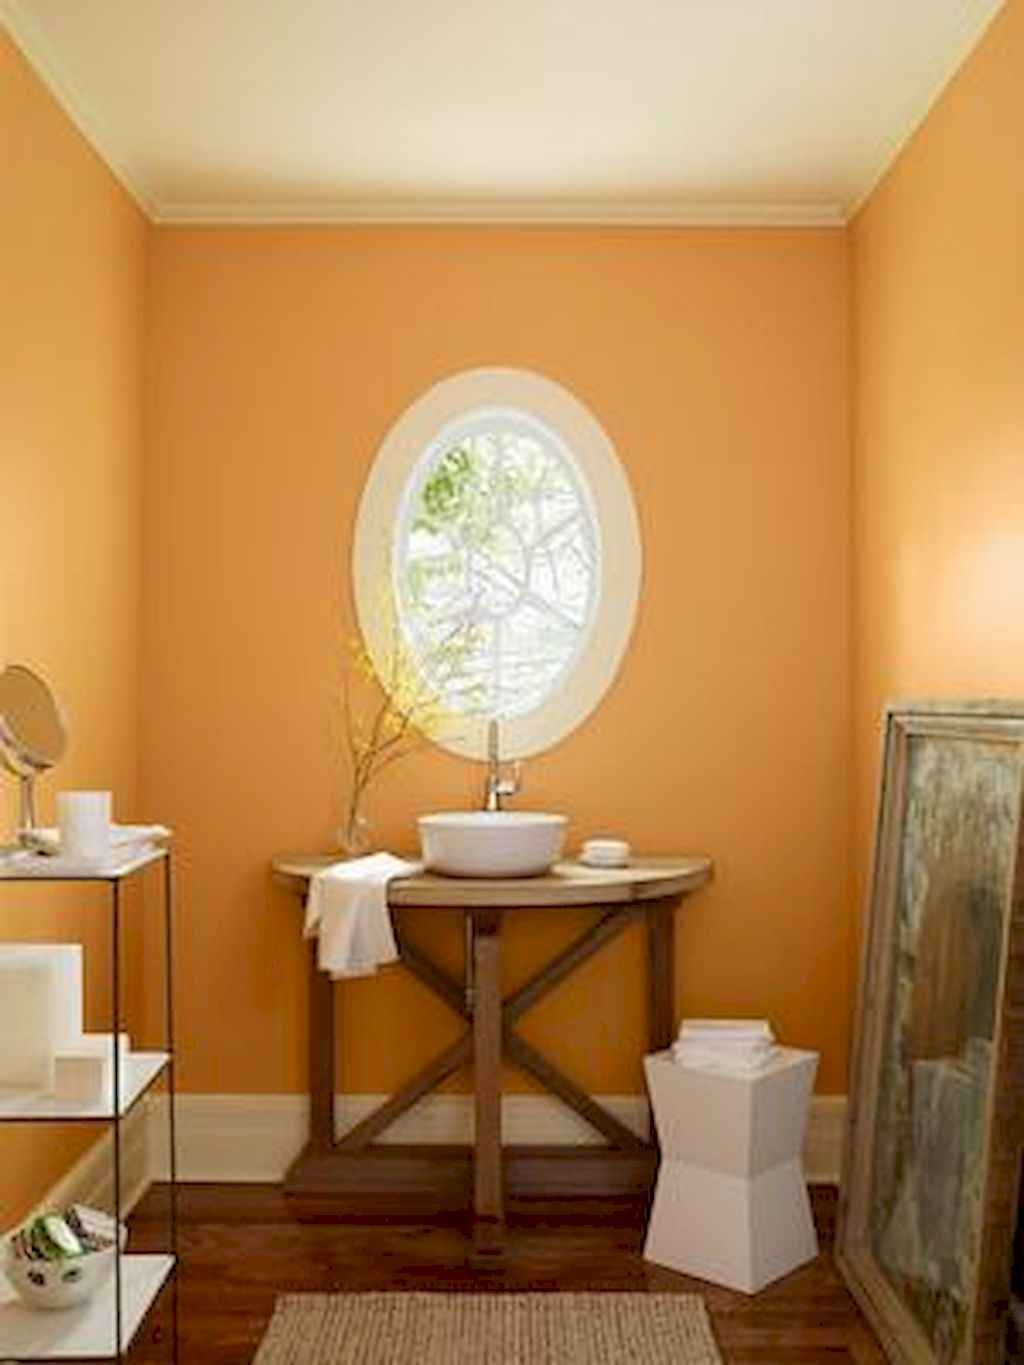 55 cool and relax bathroom design ideas (19)